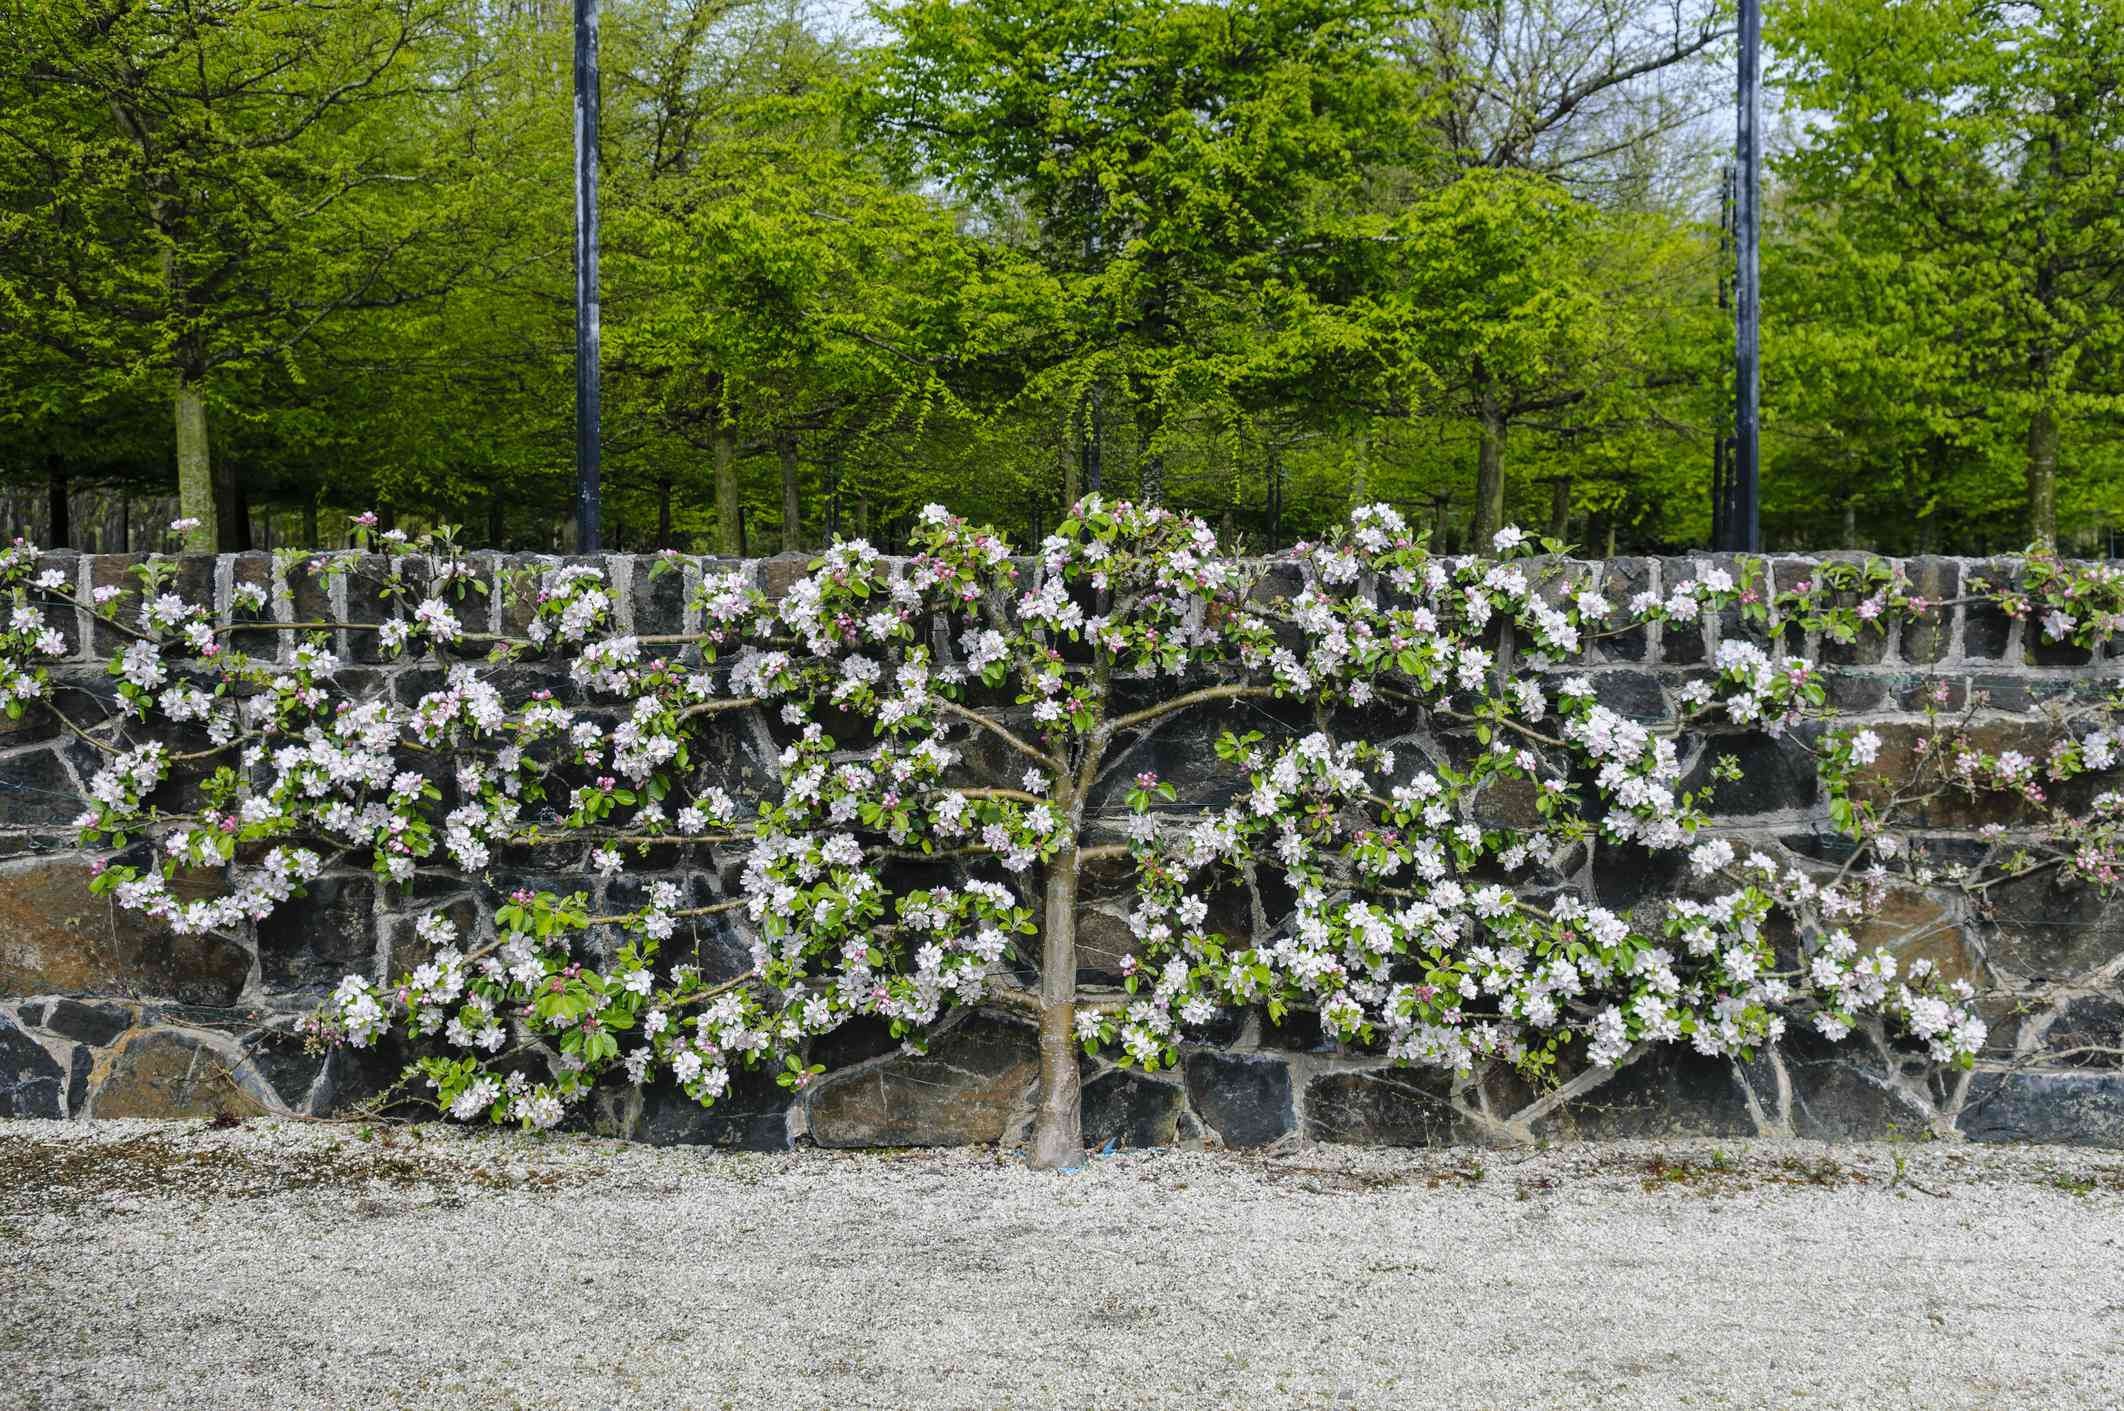 Espalier of an apple tree against a stone wall.